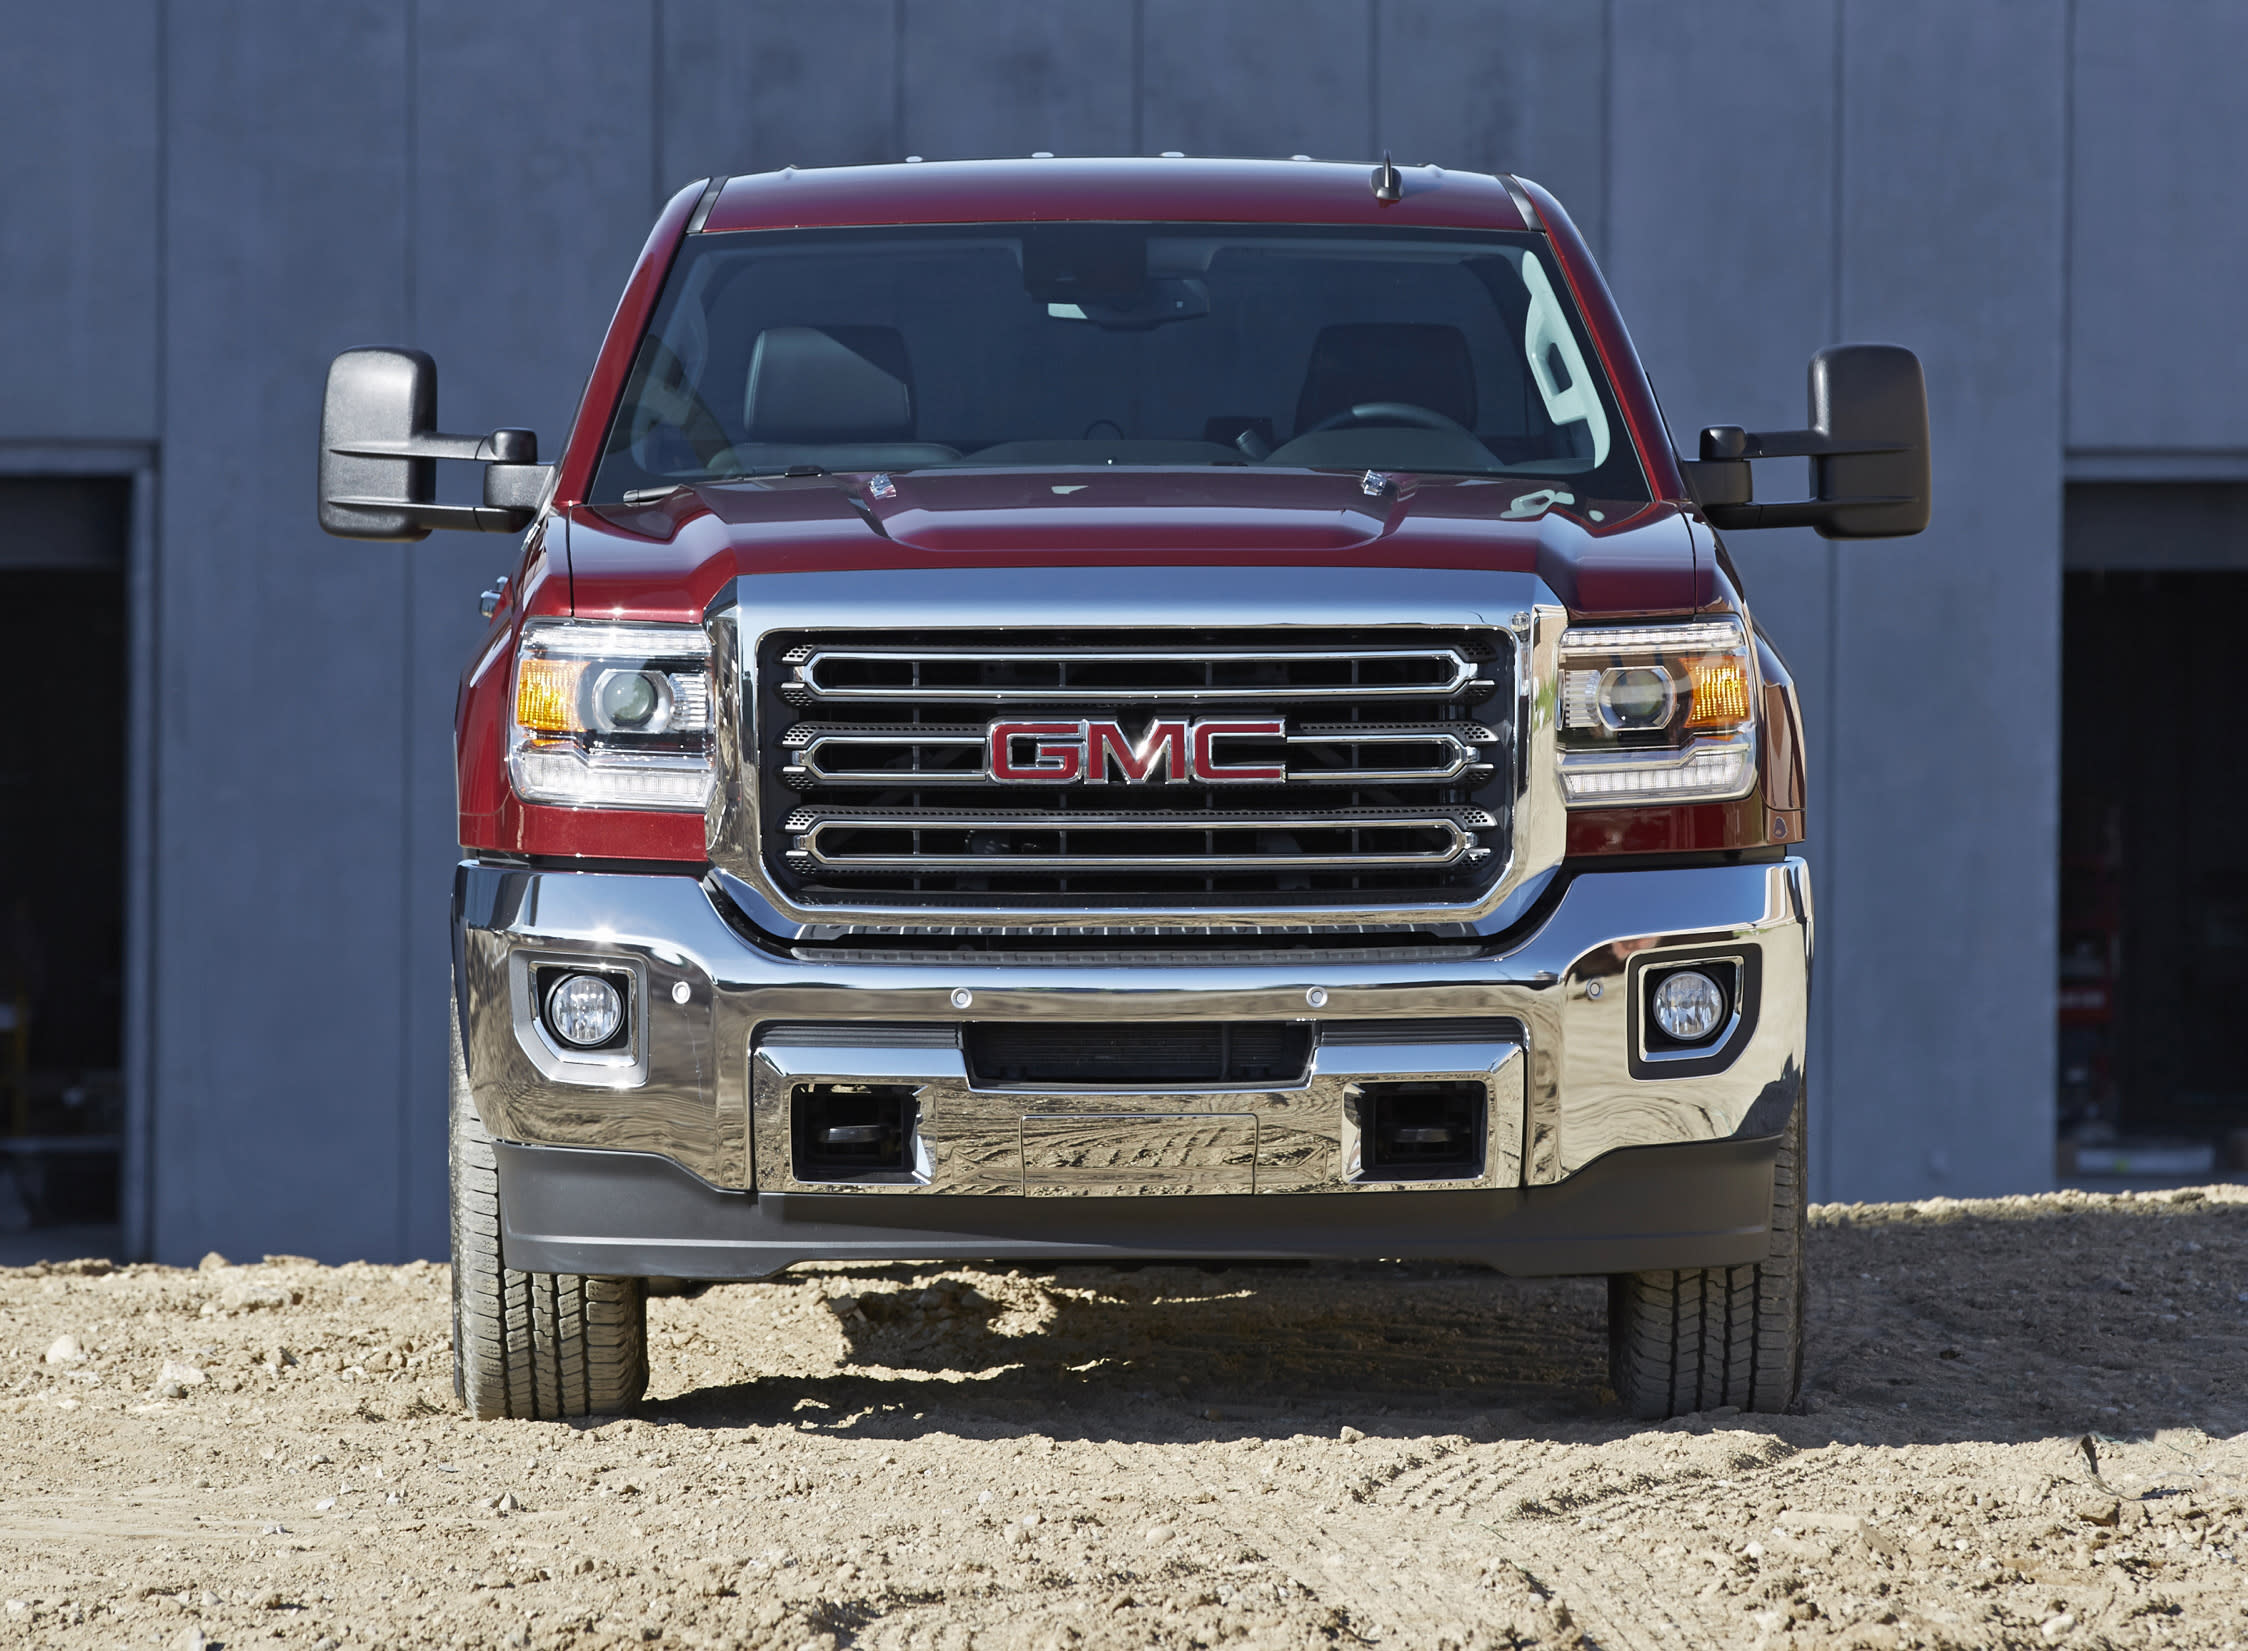 Sierra All Terrain does it all for serious truck enthusiasts